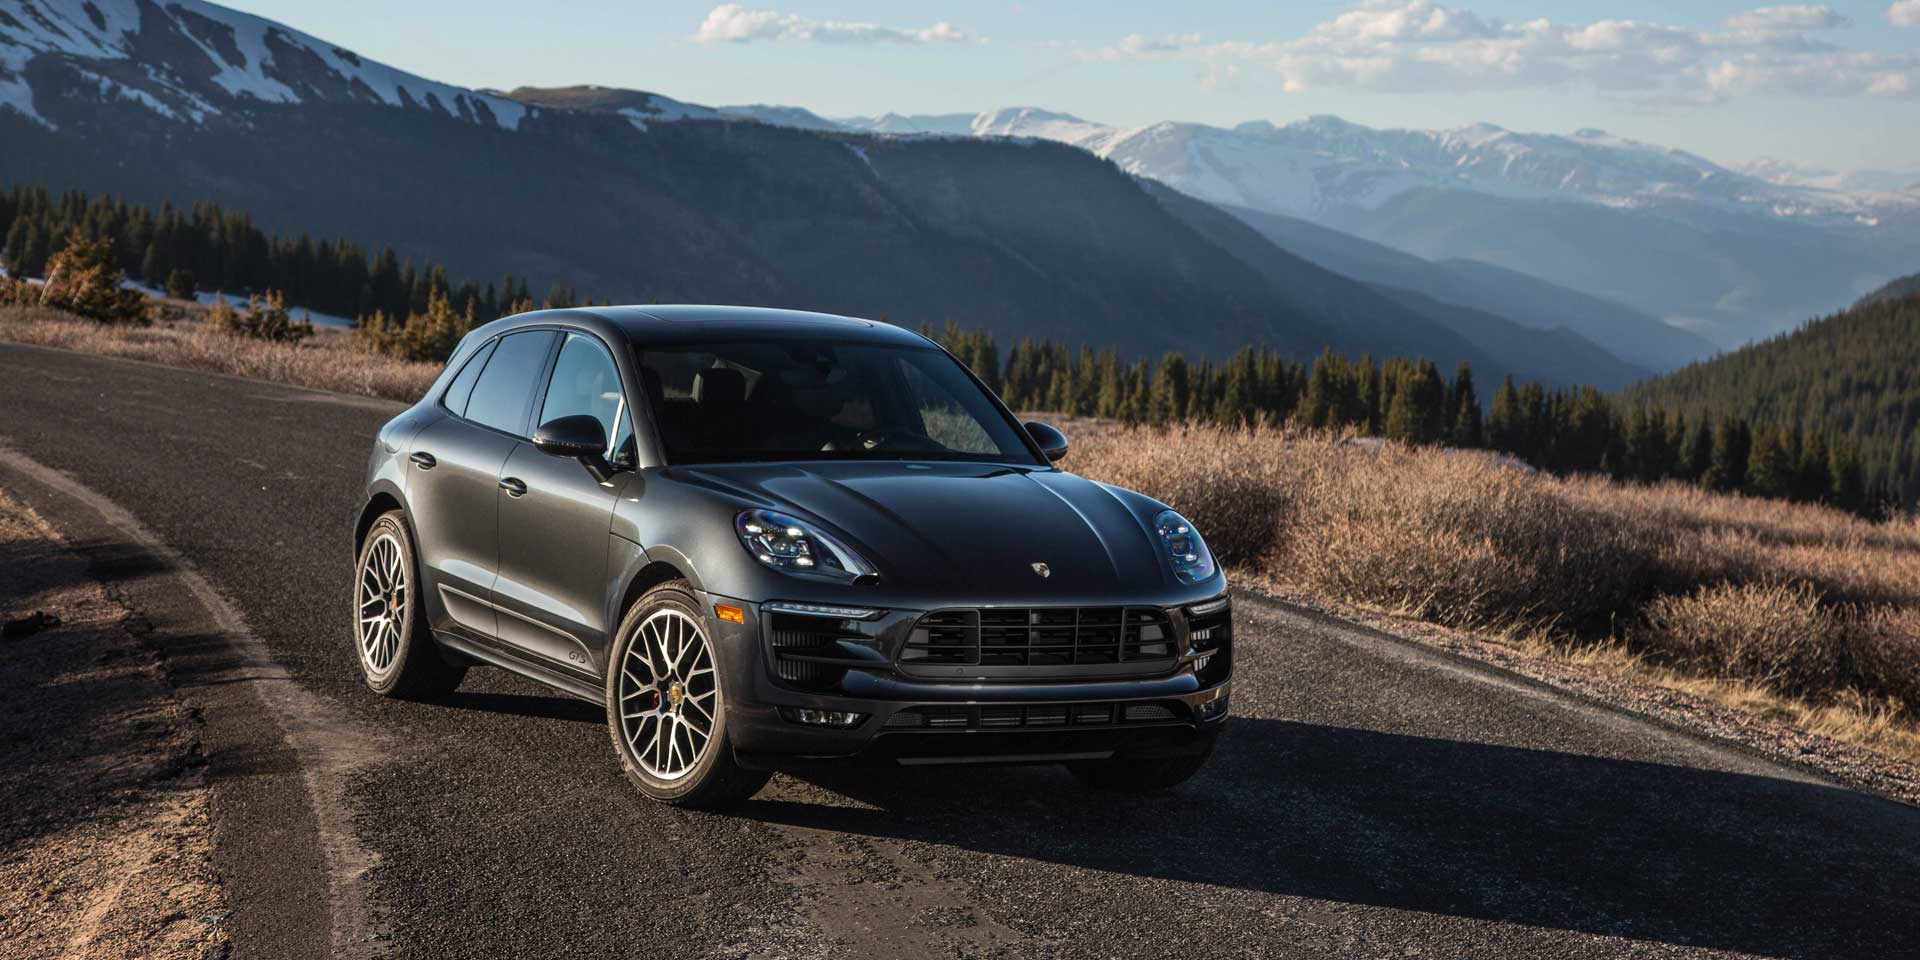 Featured Vehicle The 2017 Porsche Macan